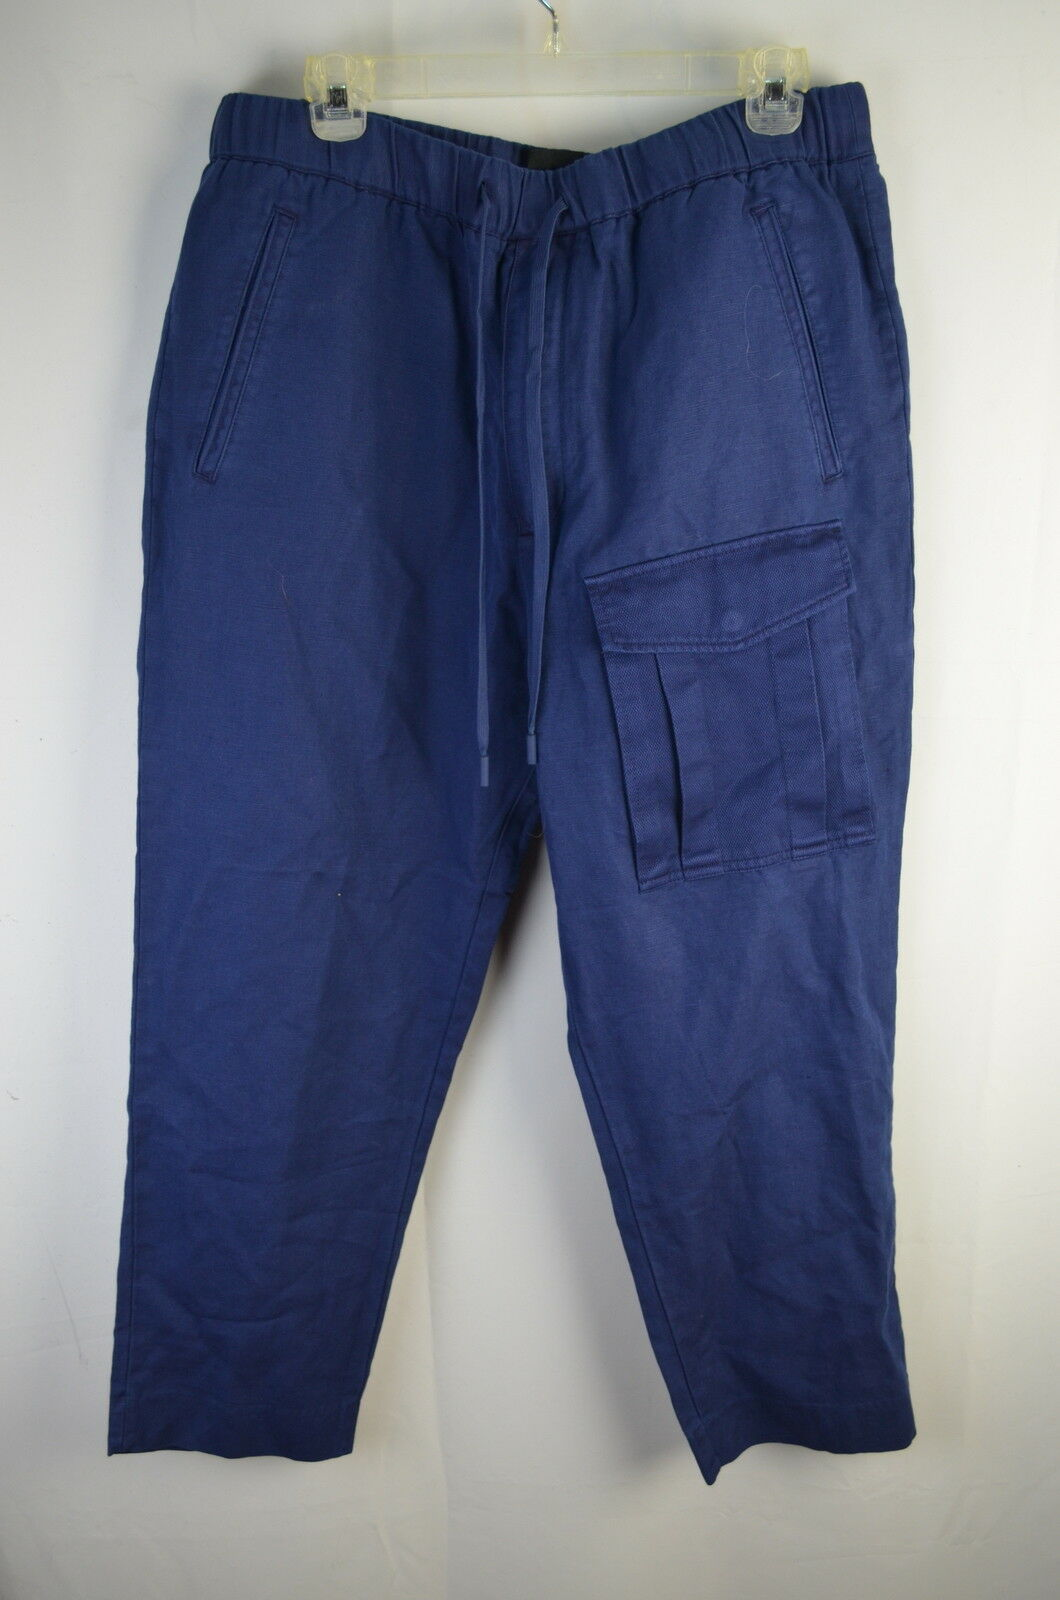 Armani Exchange Two Tone Linen Pants 36  36 Style-P6P102 Navy NEW NWT